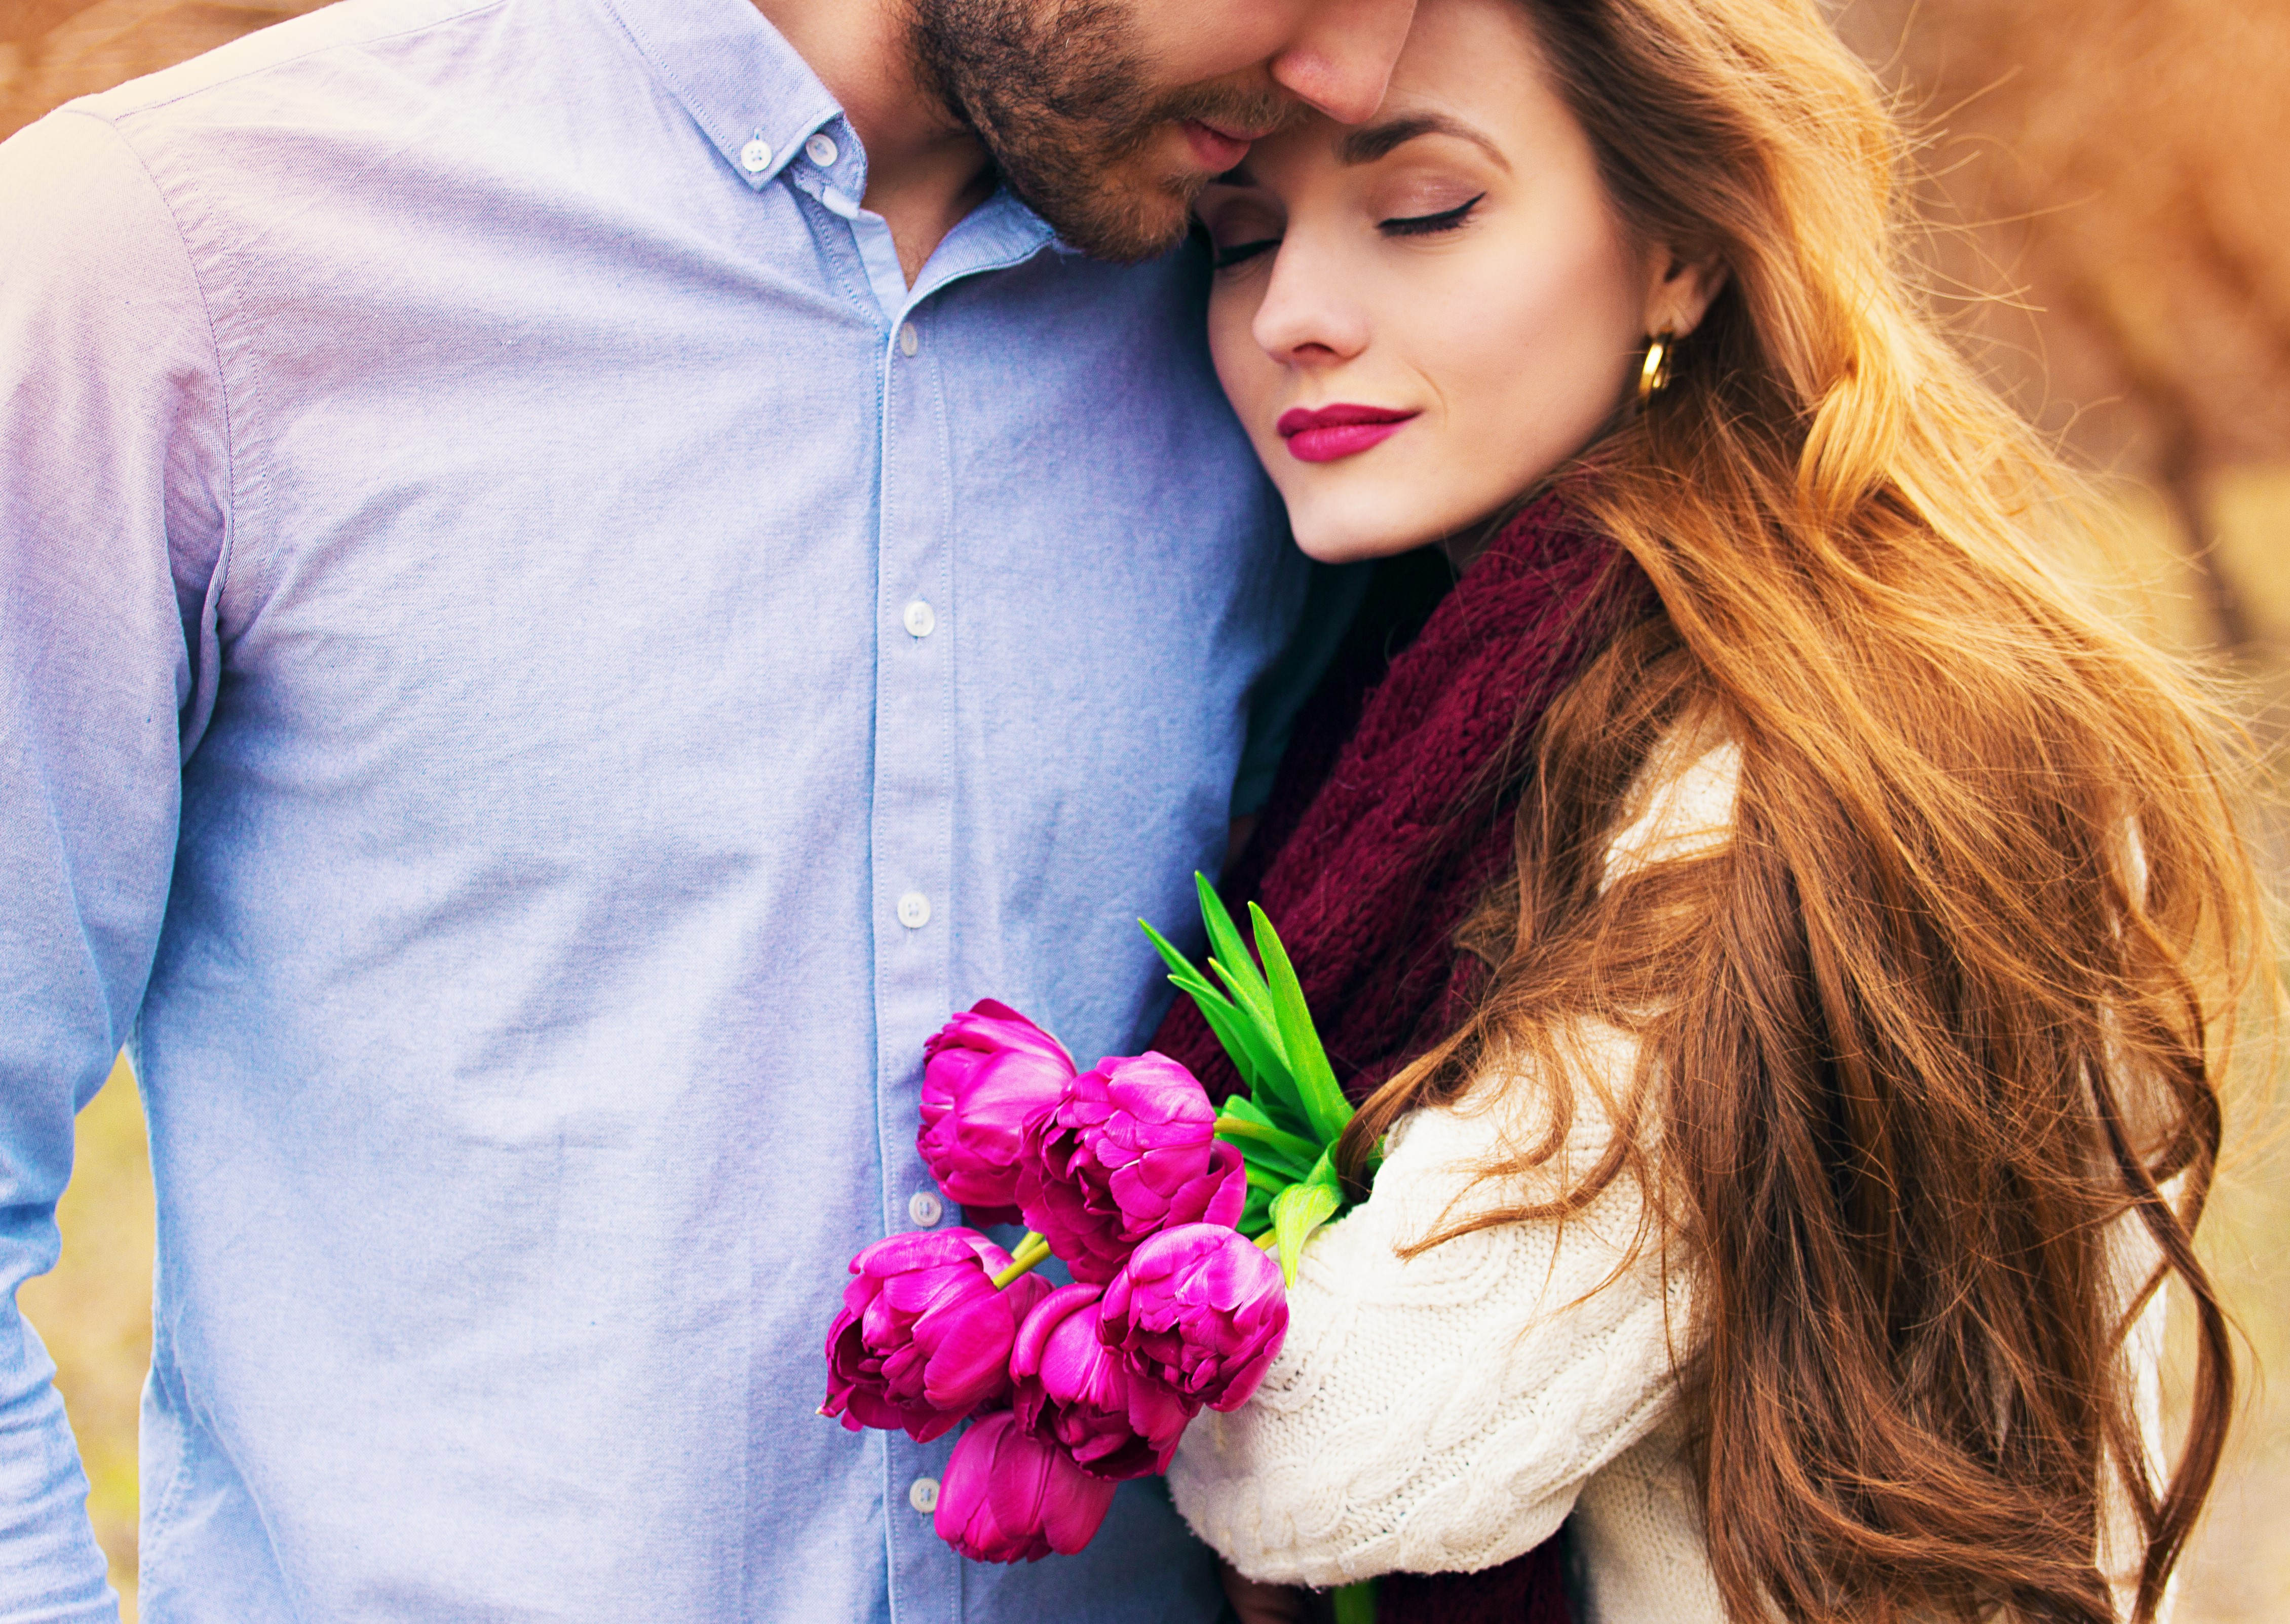 Ways to show appreciation in a relationship